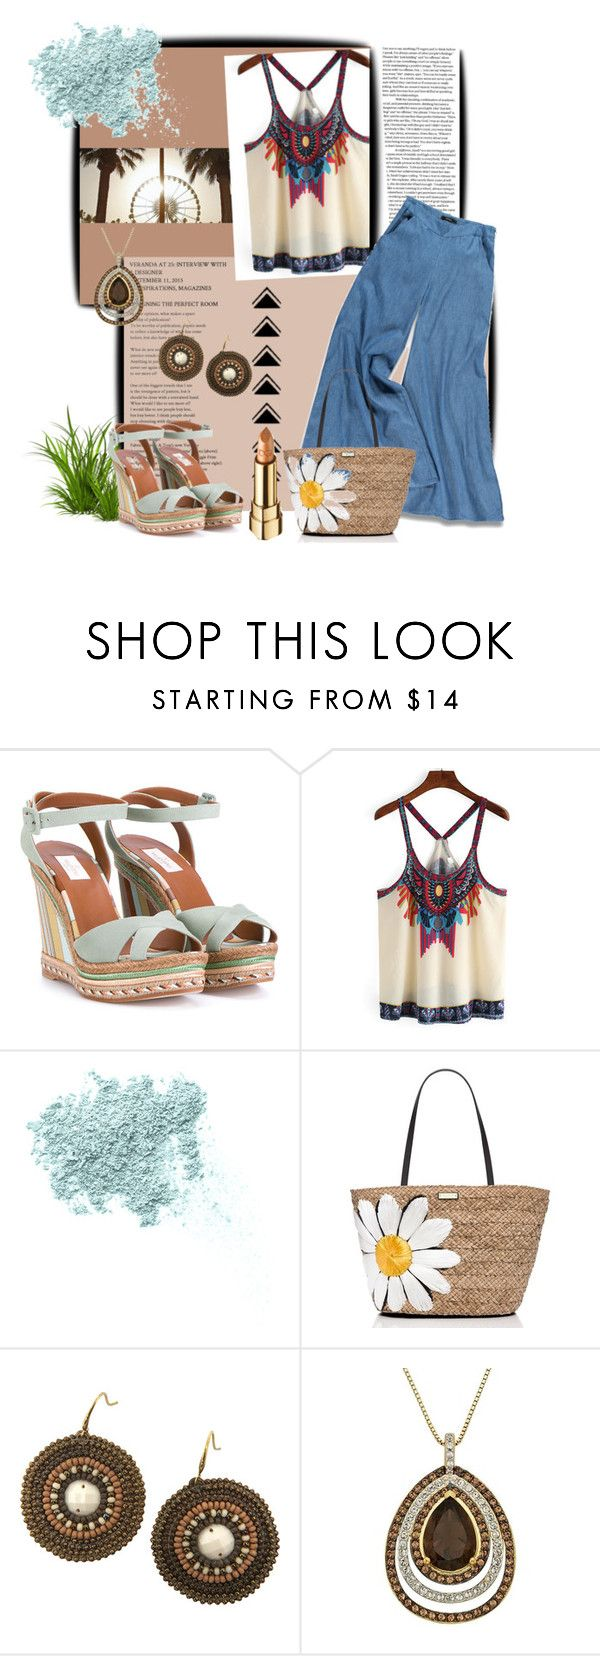 """Summer wear"" by prettyinjewels ❤ liked on Polyvore featuring Été Swim, Valentino, Bare Escentuals, Forever 21, Kate Spade, Dolce&Gabbana, summerstyle and summeroutfit"